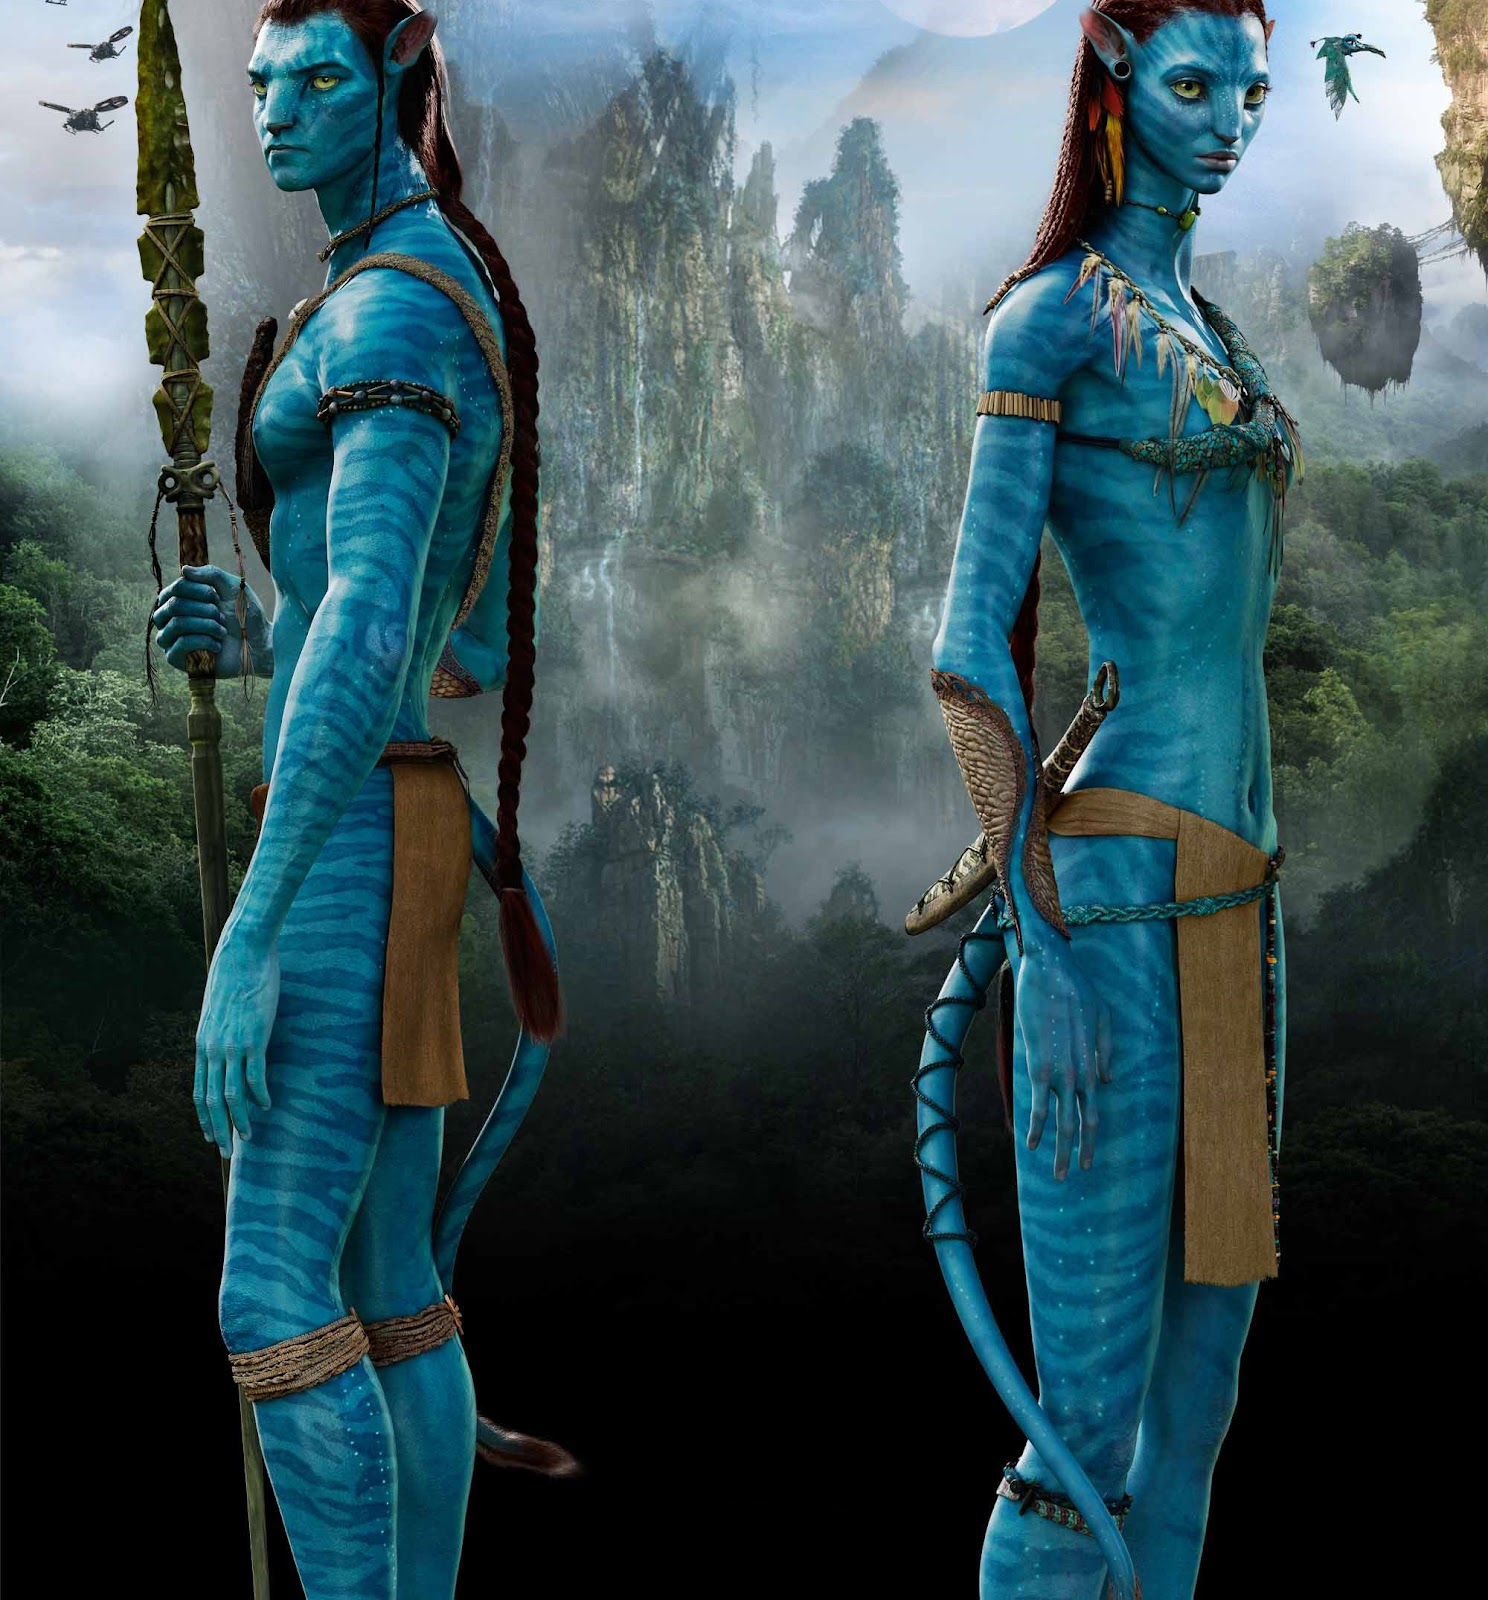 Neytiri Beautiful Warrior in Avatar Your Wallpaper - neytiri beautiful warrior in avatar wallpapers